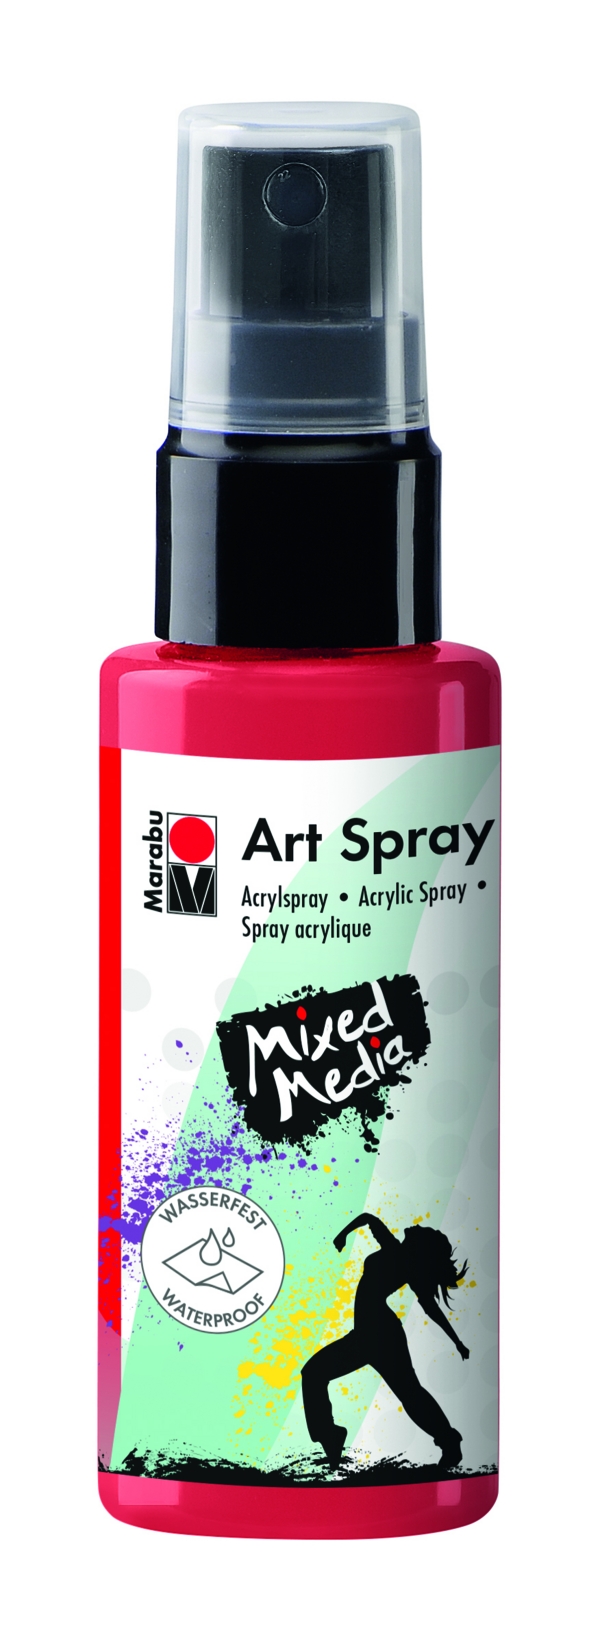 Marabu Art Spray 123 Peperoni